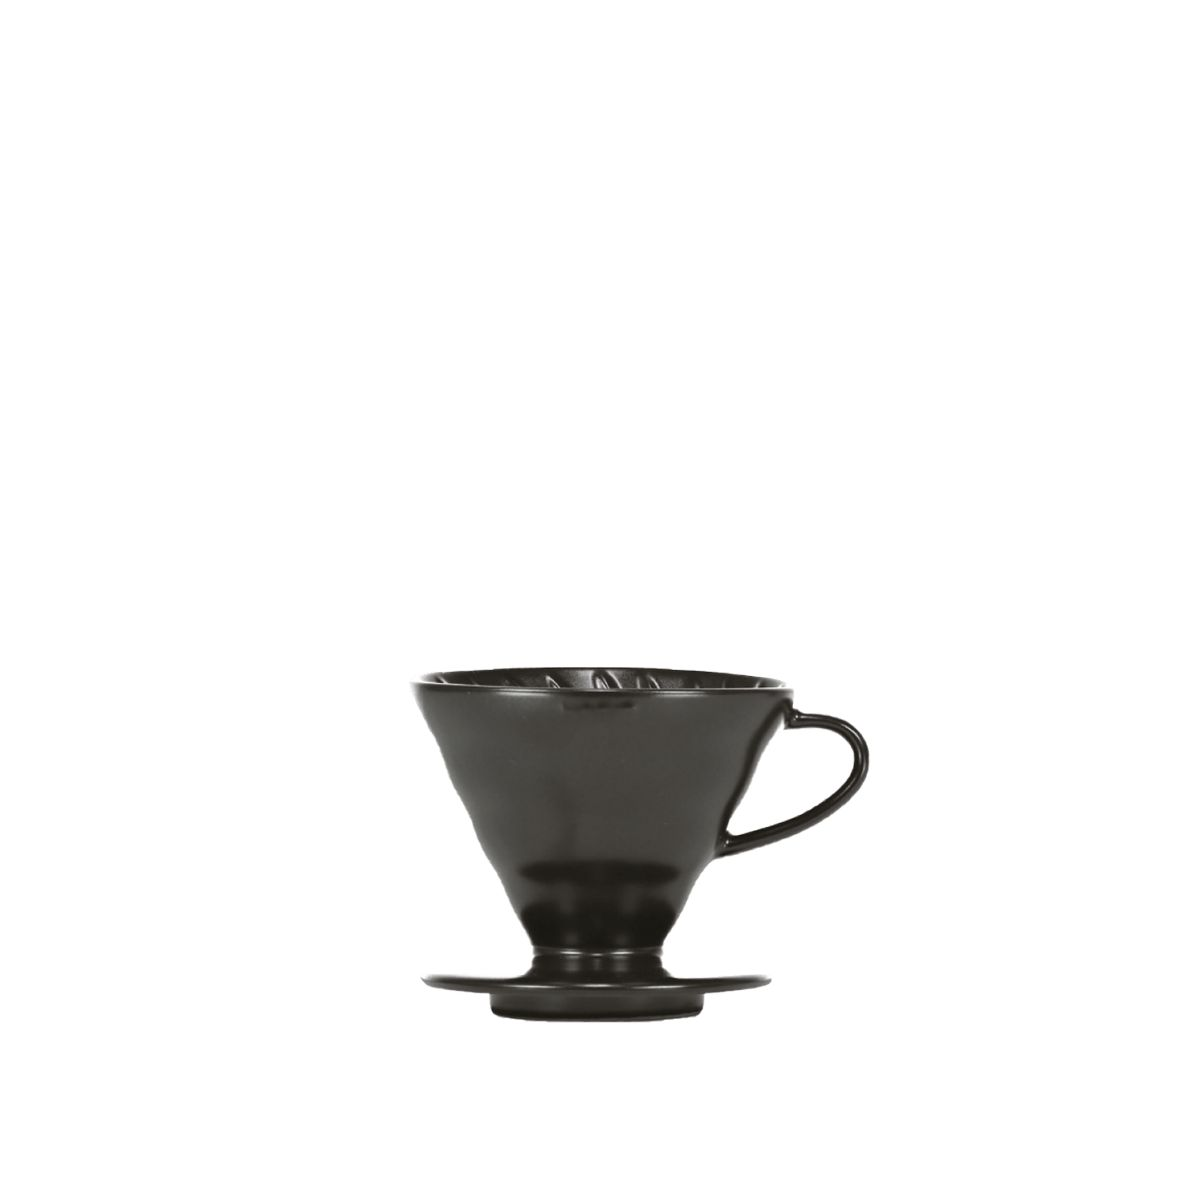 V60 Porcelain Dripper Hario [3/4 cups] - Matt black